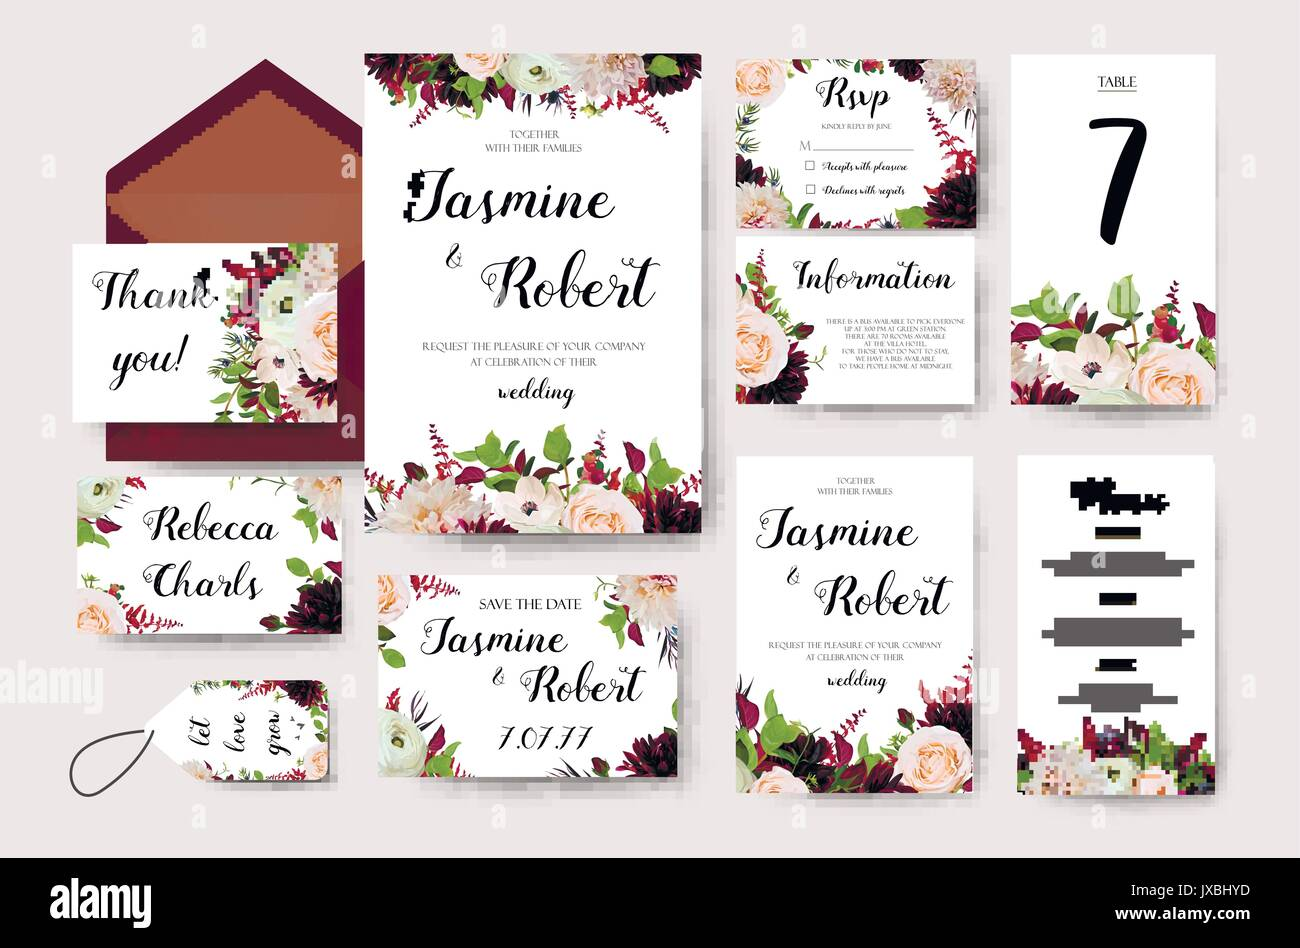 Wedding invitation flower invite card design with garden peach ...